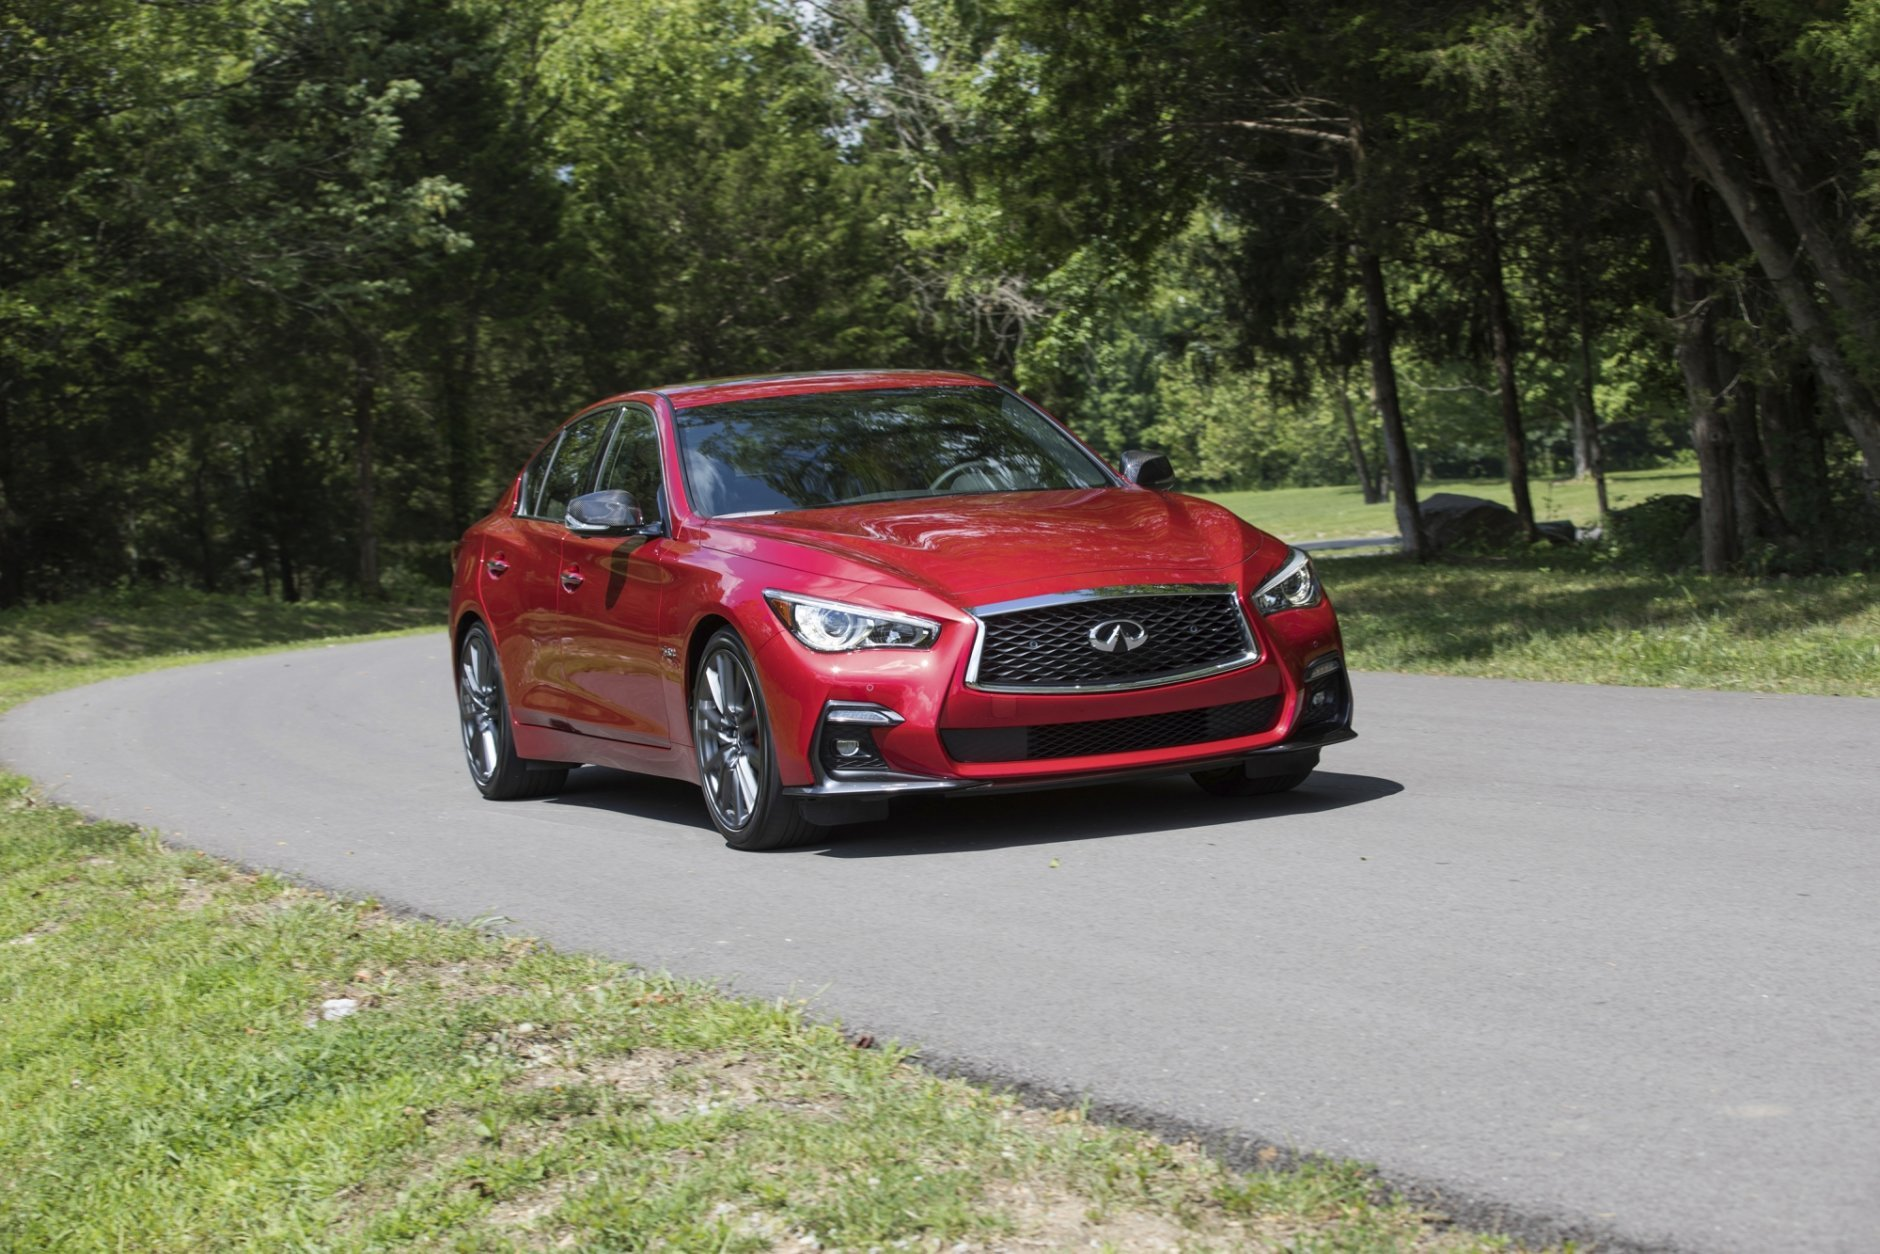 <h3>Infiniti Q50 4-door</h3> <p>The Infiniti Q50 is a popular luxury sedan that doesn&#8217;t skimp on power, with some models pushing 400hp.</p> <p>Maybe the combo of power and class is what gives it the allure for thieves. It&#8217;s stolen 5.25 times the national average.</p>